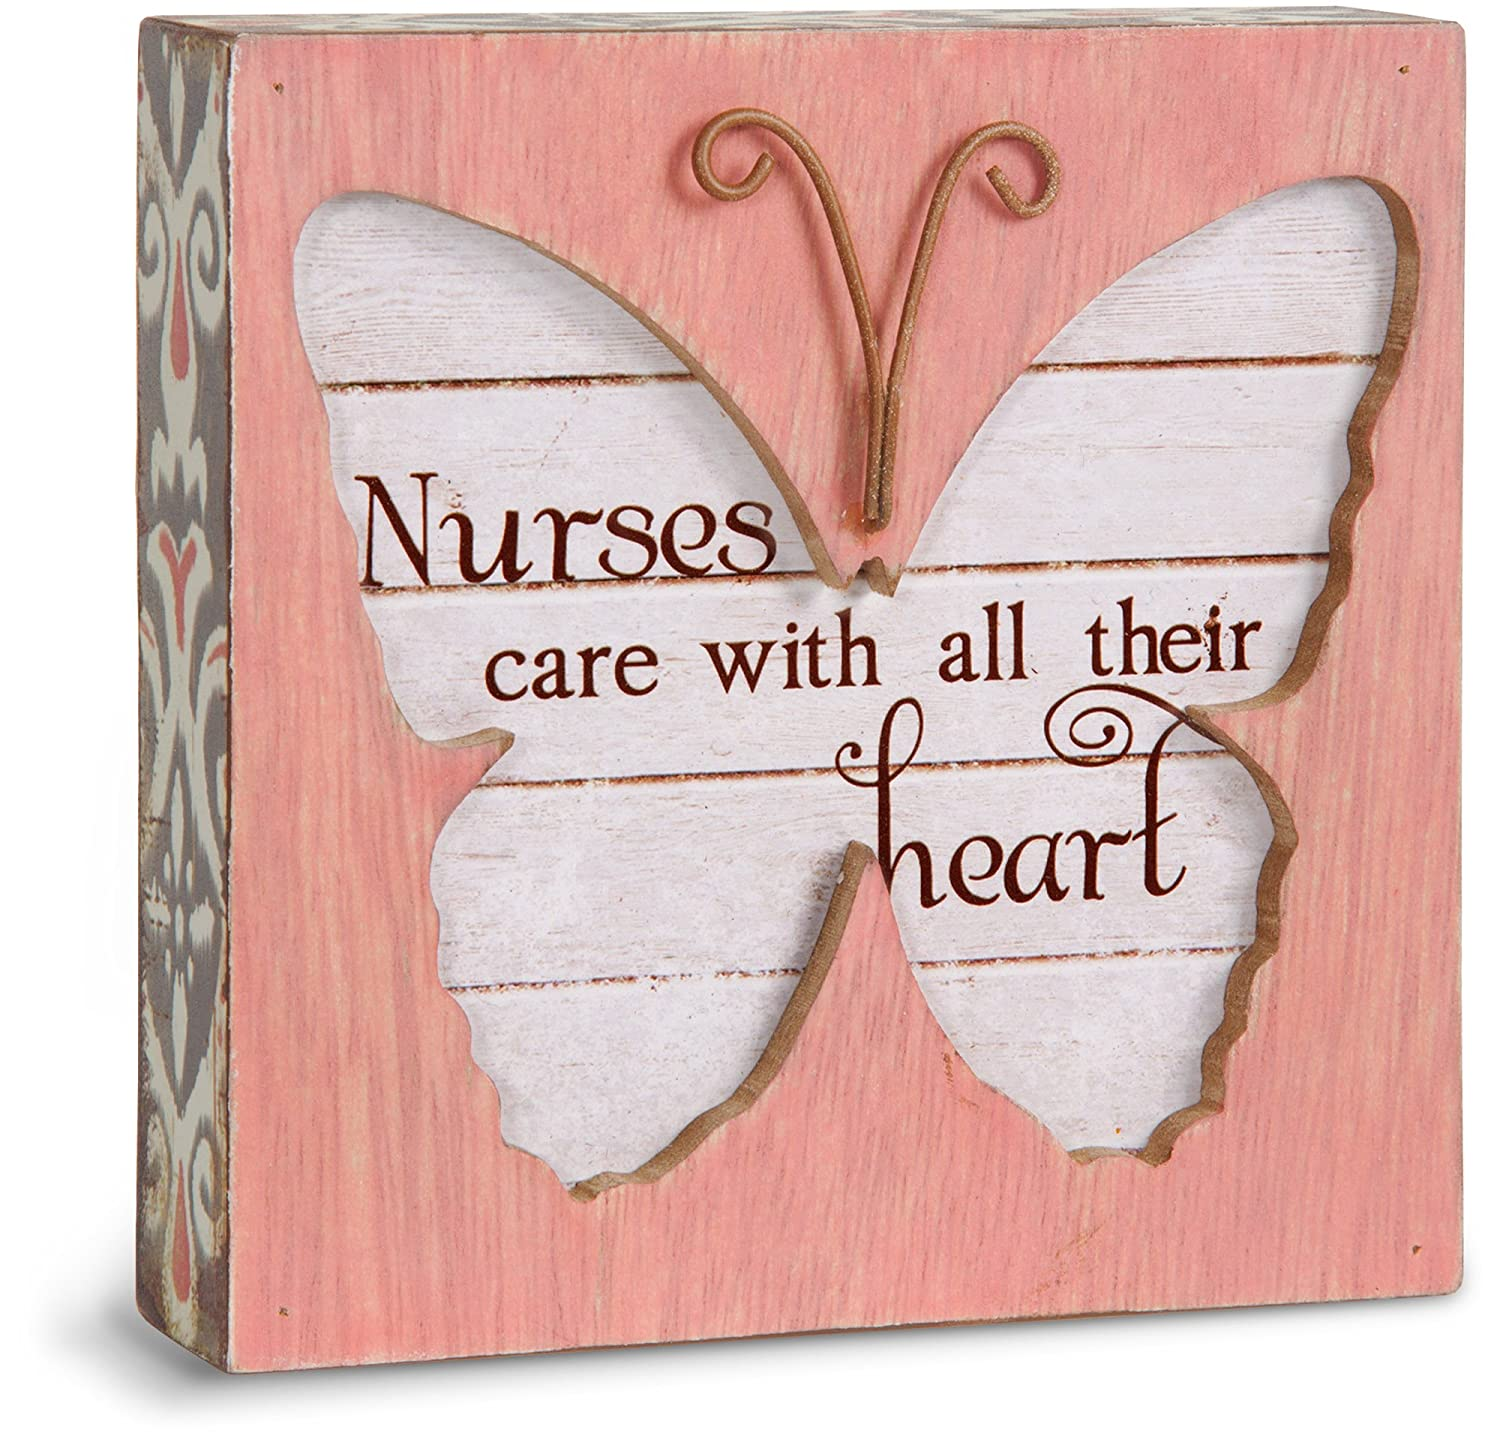 Simple Spirits 41092 Pavilion Gift Company Nurses Care with All Their Heart Butterfly Plaque, 4-1/2-Inch